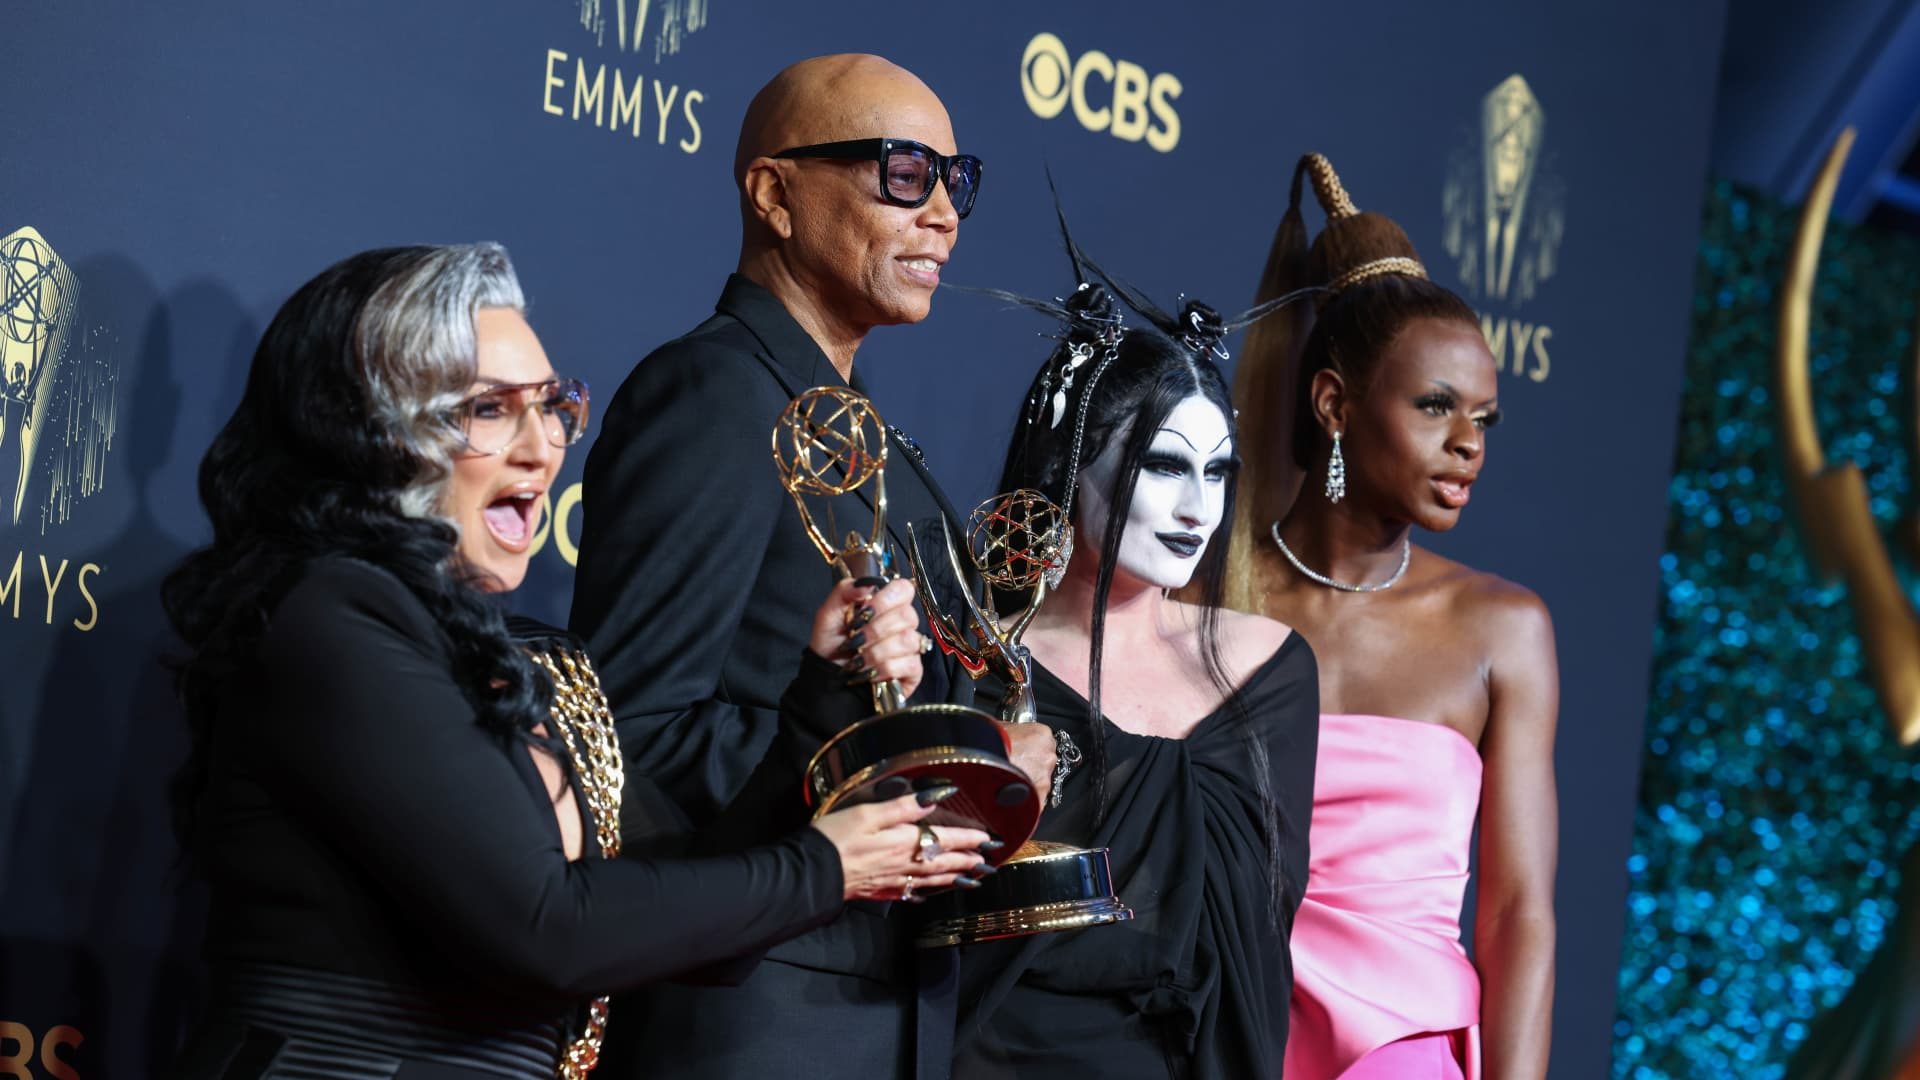 (L-R) Michelle Visage, RuPaul, Gottmik, and Symone, winners of the Outstanding Competition Program award for 'RuPaul's Drag Race,' pose in the press room during the 73rd Primetime Emmy Awards at L.A. LIVE on September 19, 2021 in Los Angeles, California.